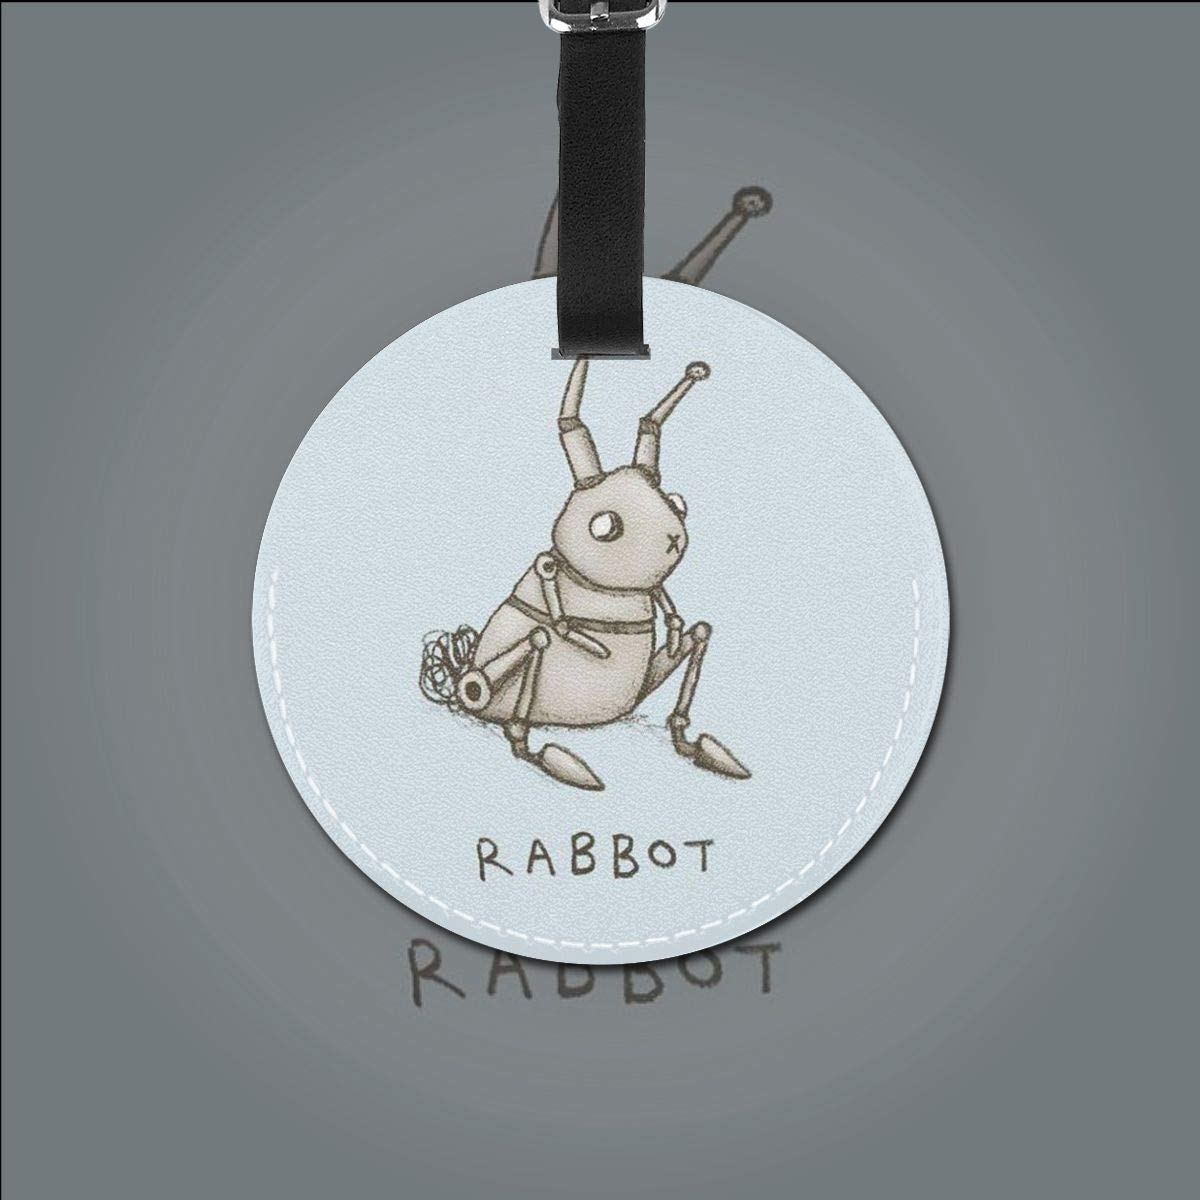 RABBOT Rabbit Robot Luggage Tags Suitcase Luggage Tags Travel Accessories Baggage Name Tags 2 PCS